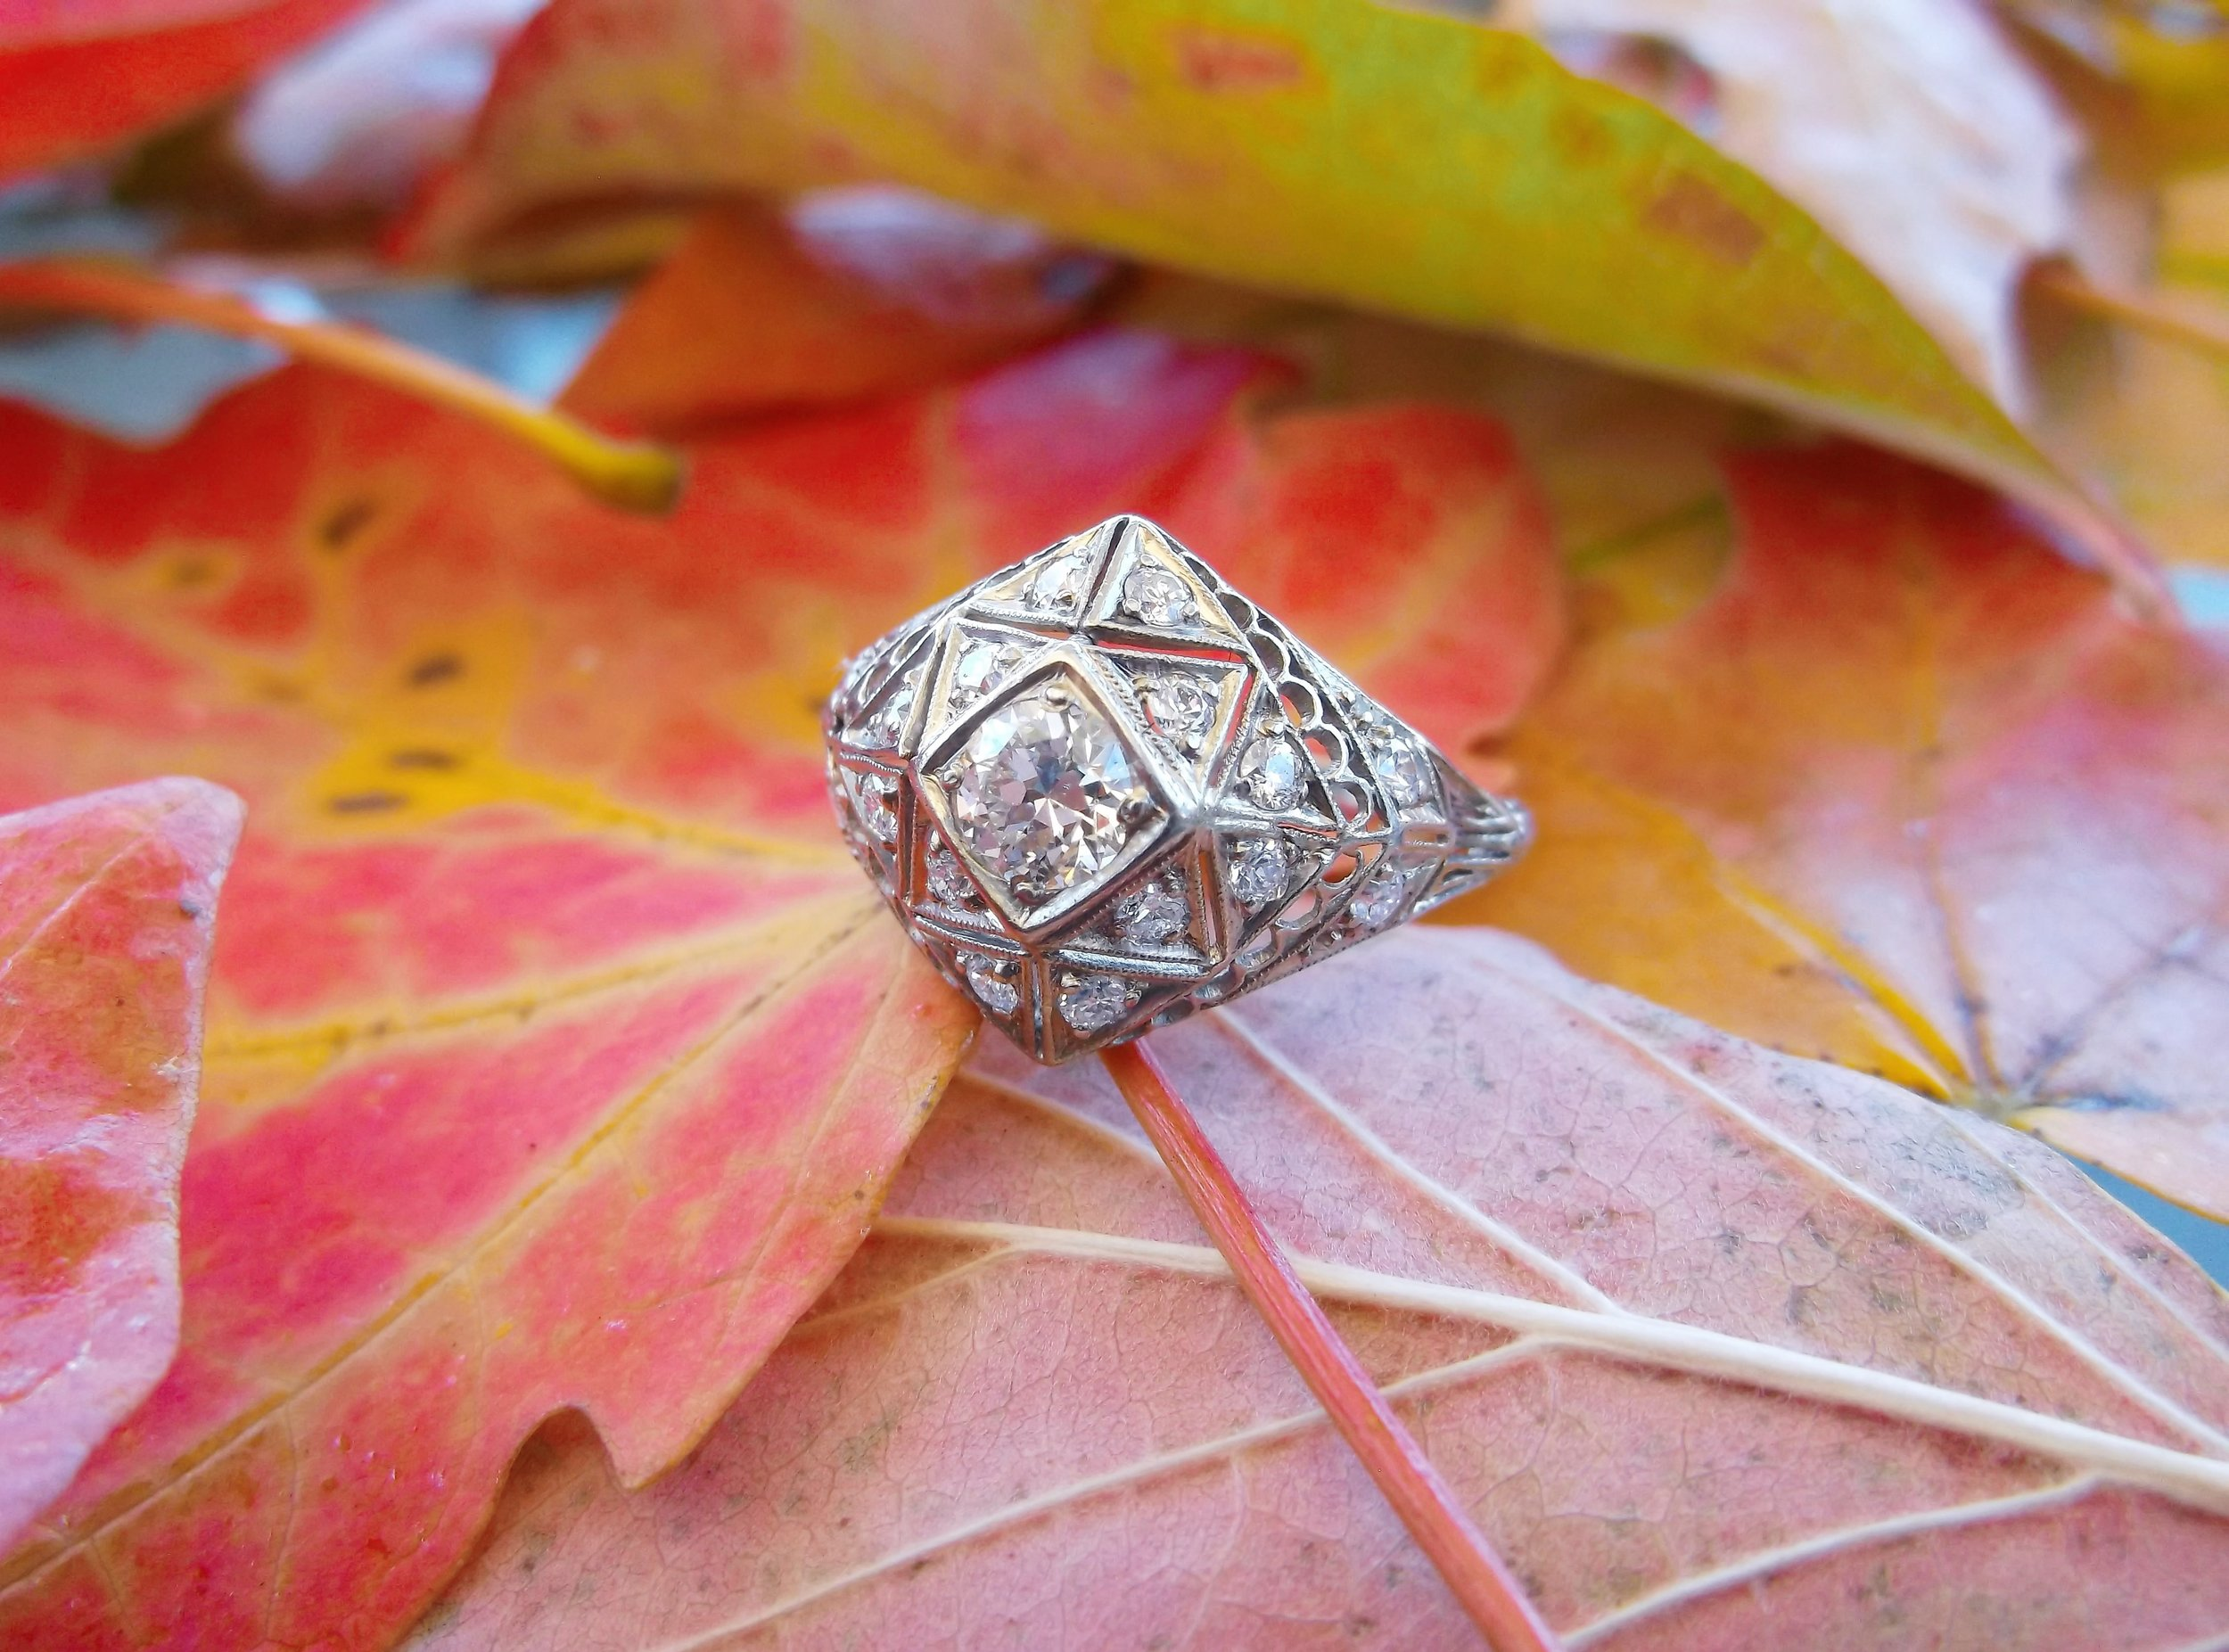 SOLD - Intricate Art Deco diamond ring, set with a 0.50 carat Old Mine cut diamond in the center.